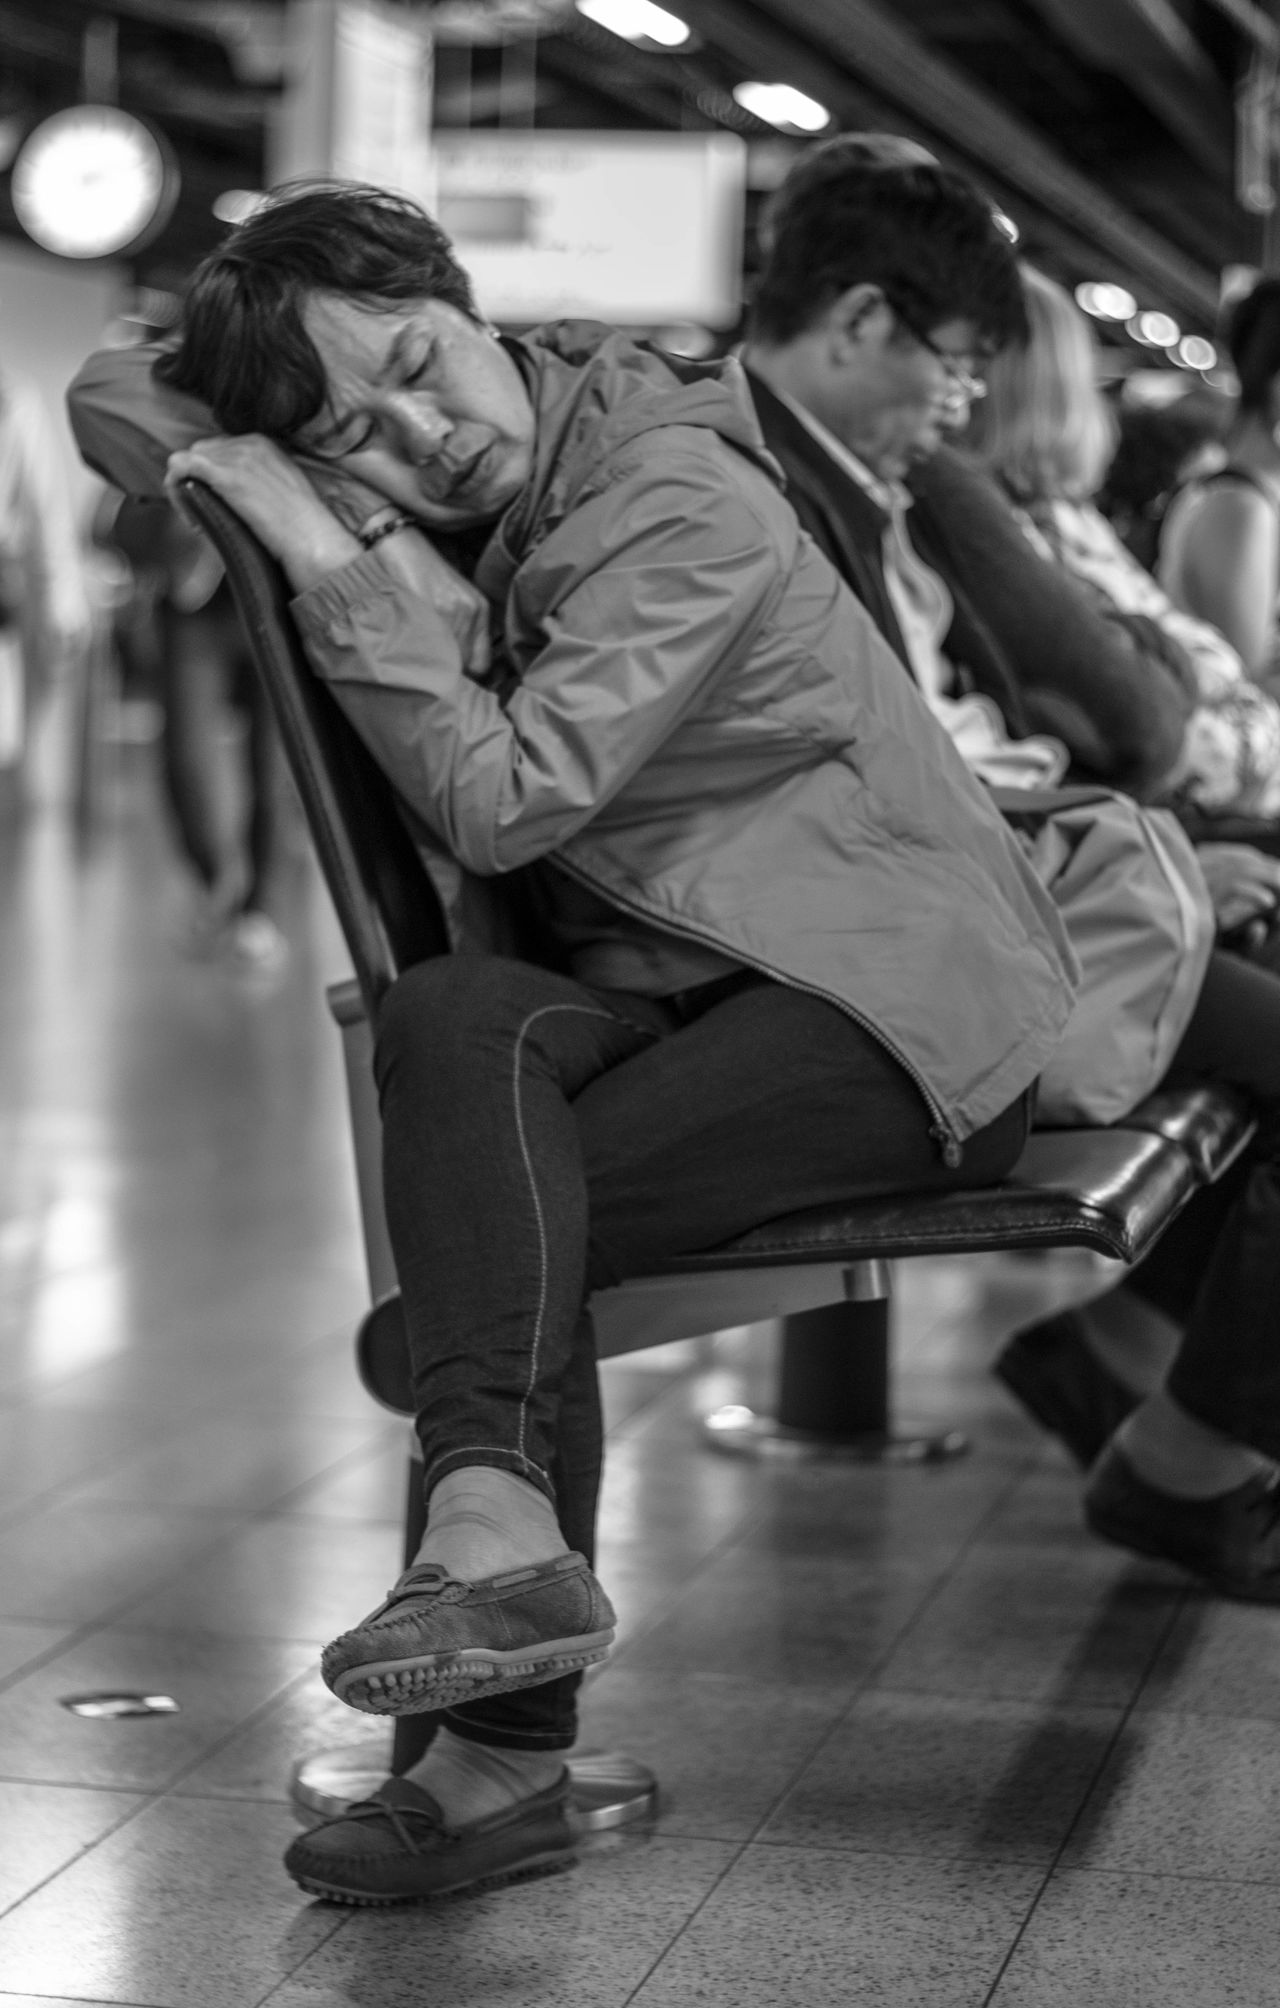 Black & White Black And White Blackandwhite Blackandwhite Photography Delay Flight Lifestyles People Photography Person Real People Sleeping Streetphoto_bw Streetphotography Waiting Waiting ...